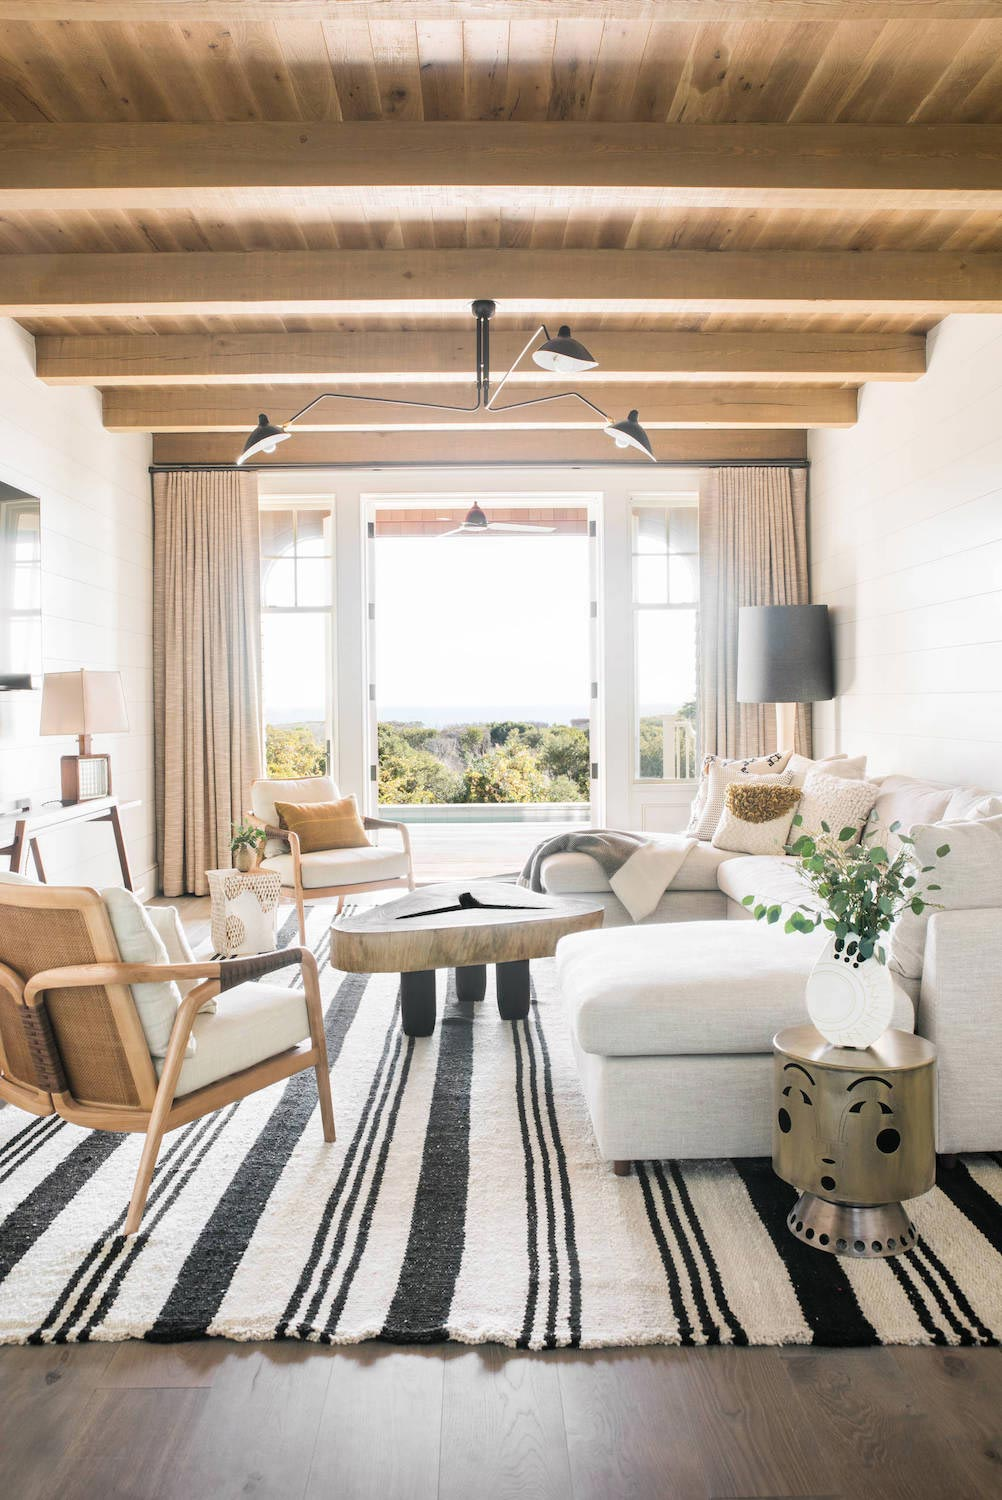 Lovely traditional beach house in South Carolina is converted into a bright contemporary homeby Cortney Bishop Design